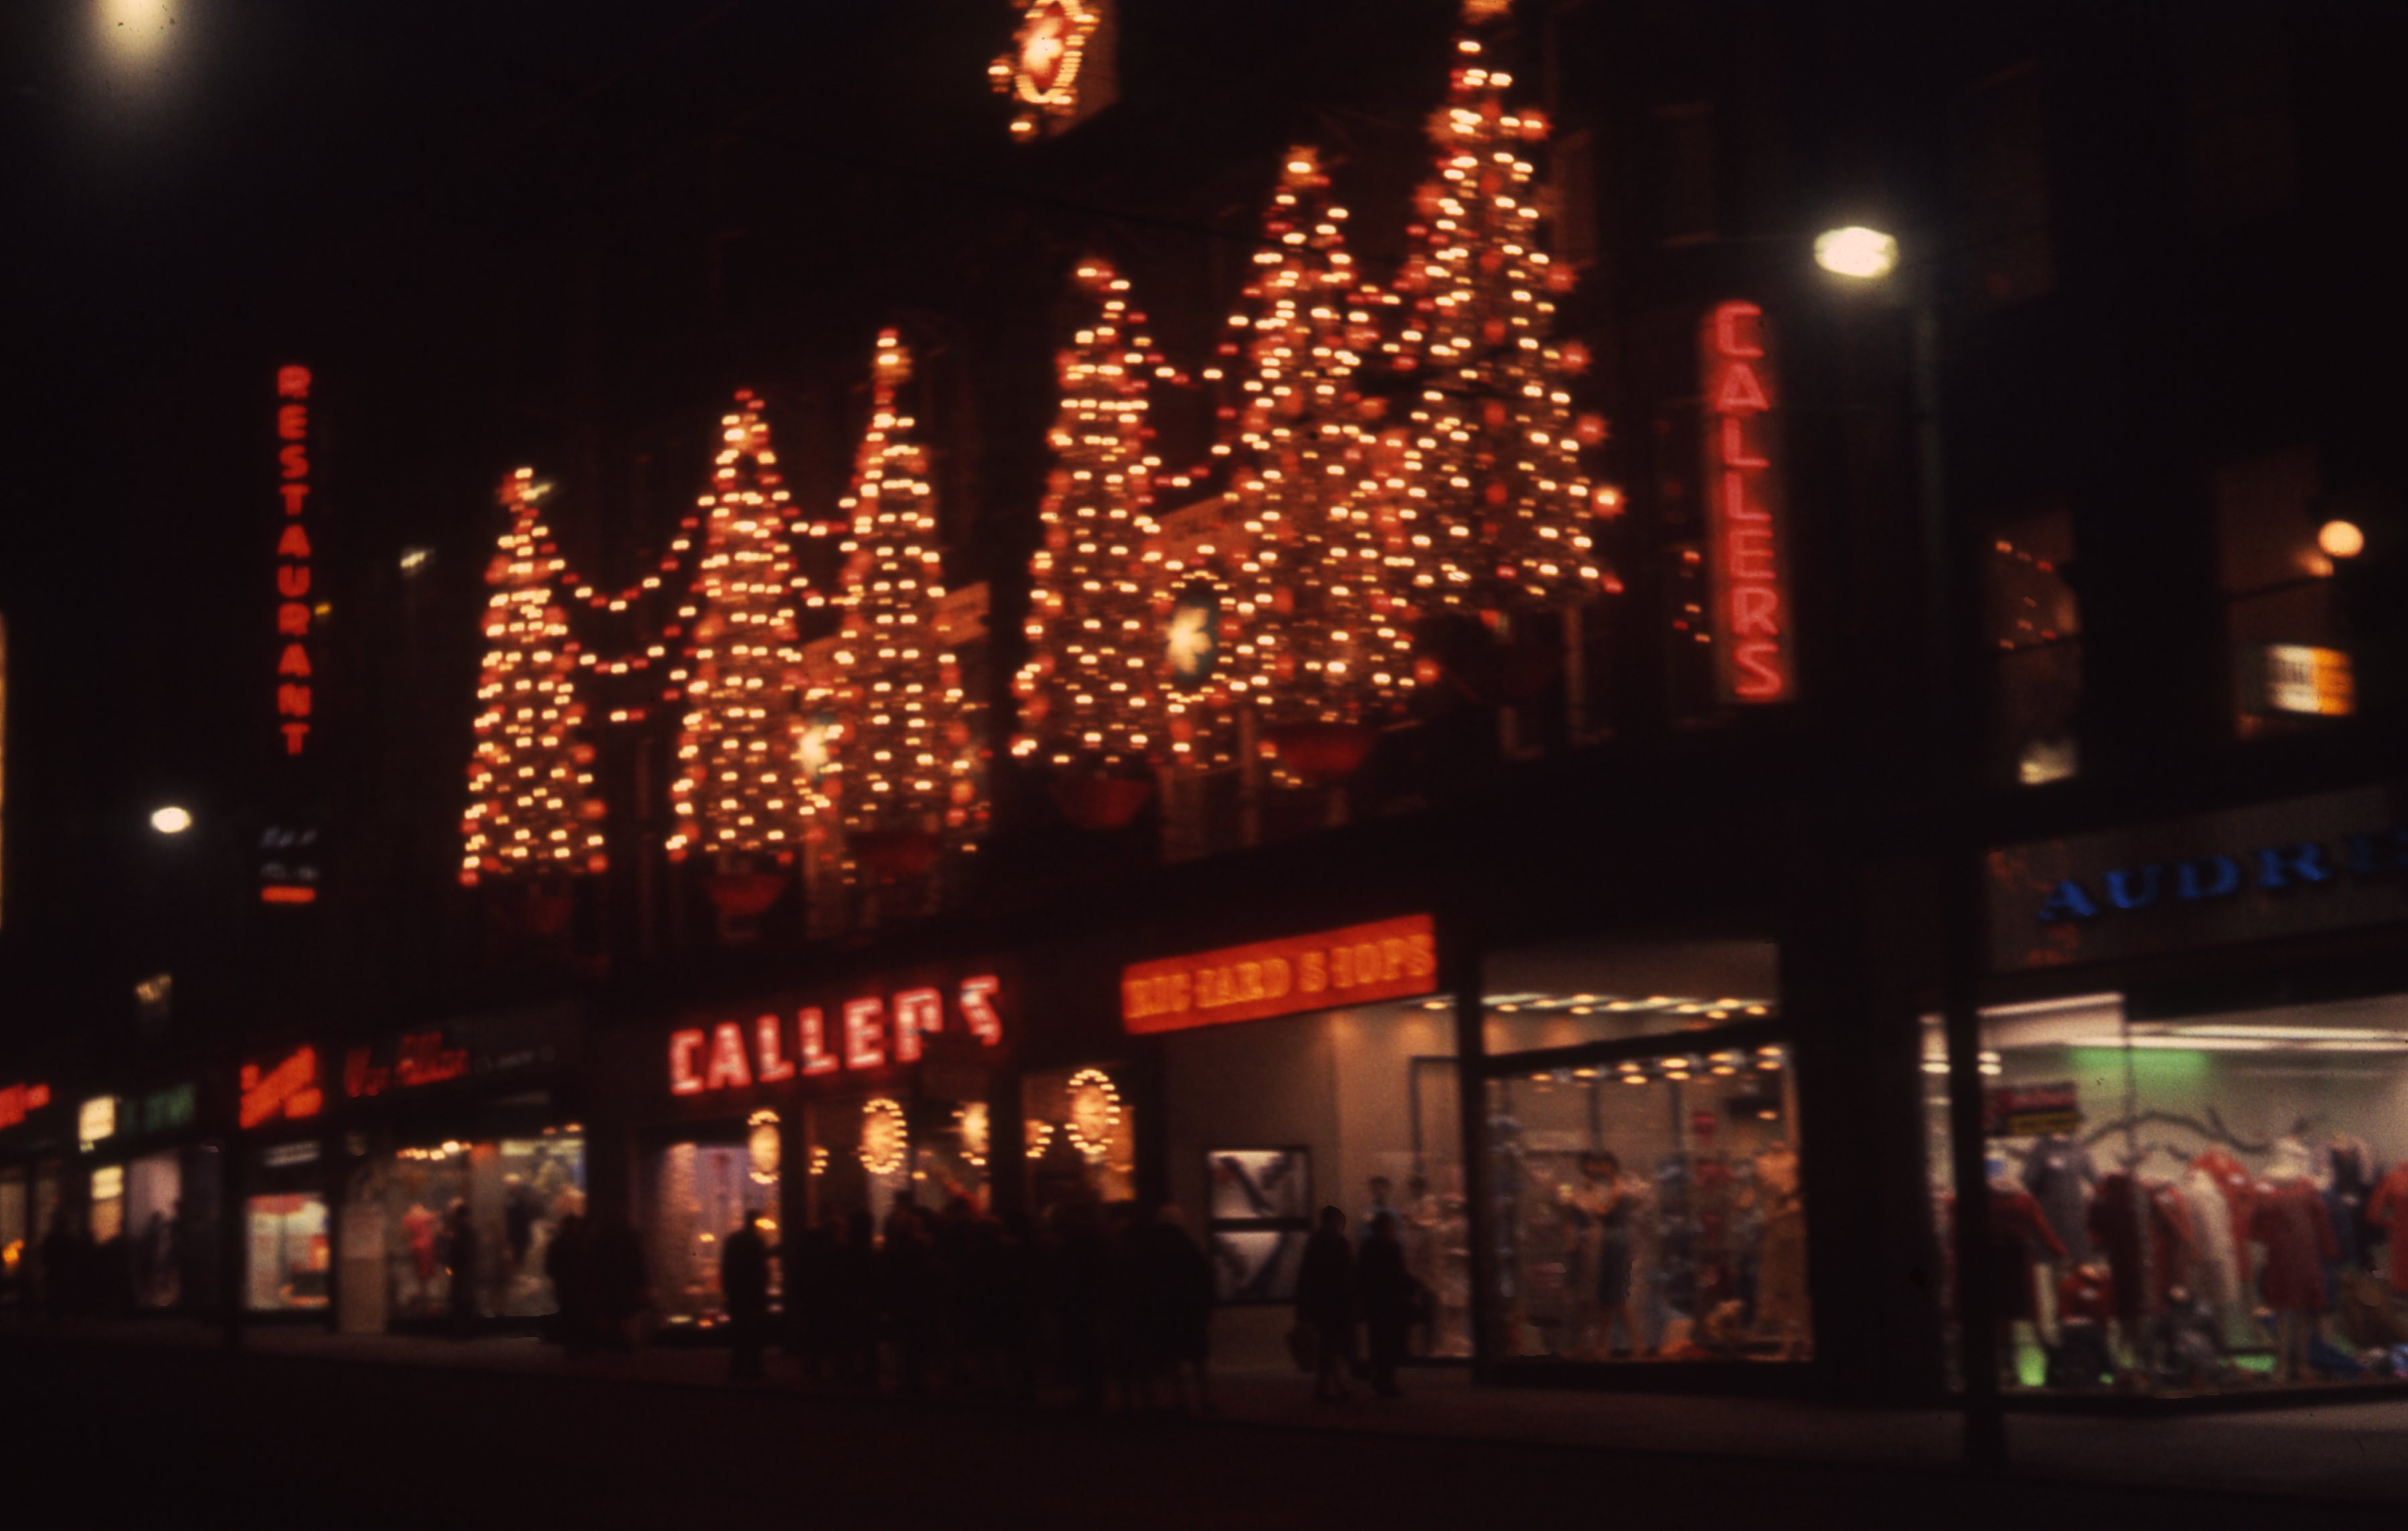 The Callers department store name is spelt out in festive lights. This is a 35mm slide. It was taken in 1964.